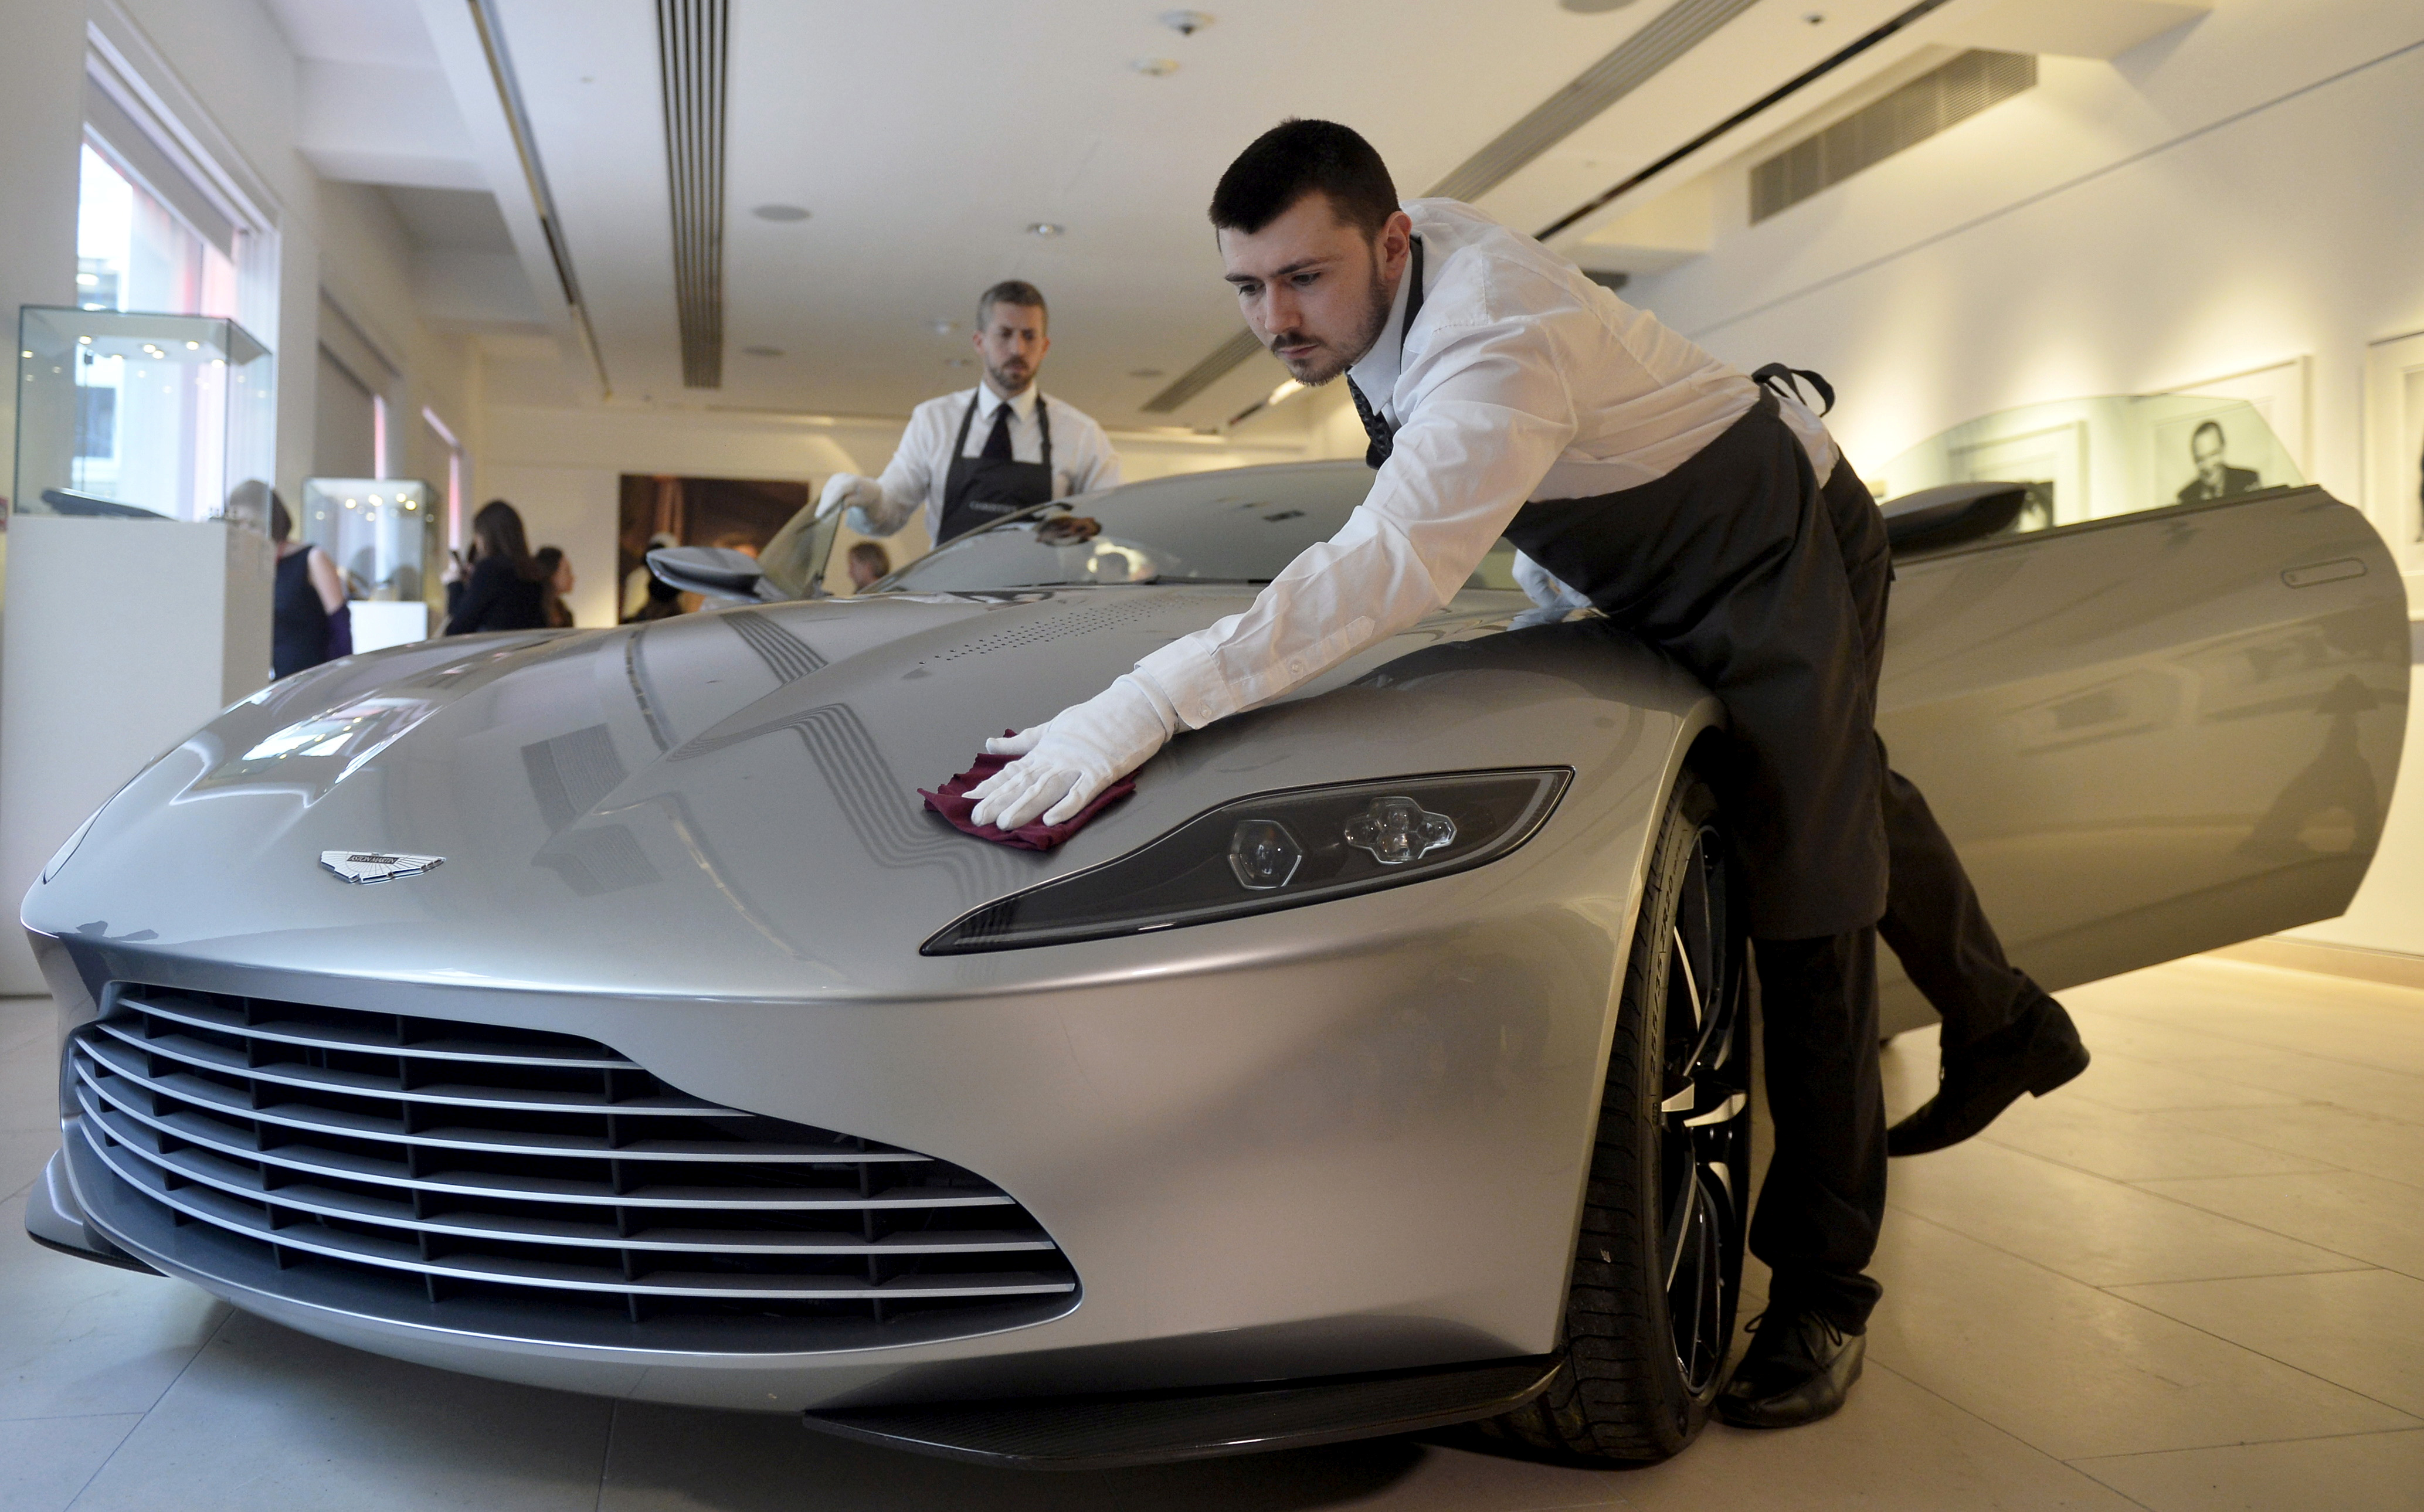 aston martin plans to squeeze in its ipo before brexit — quartz